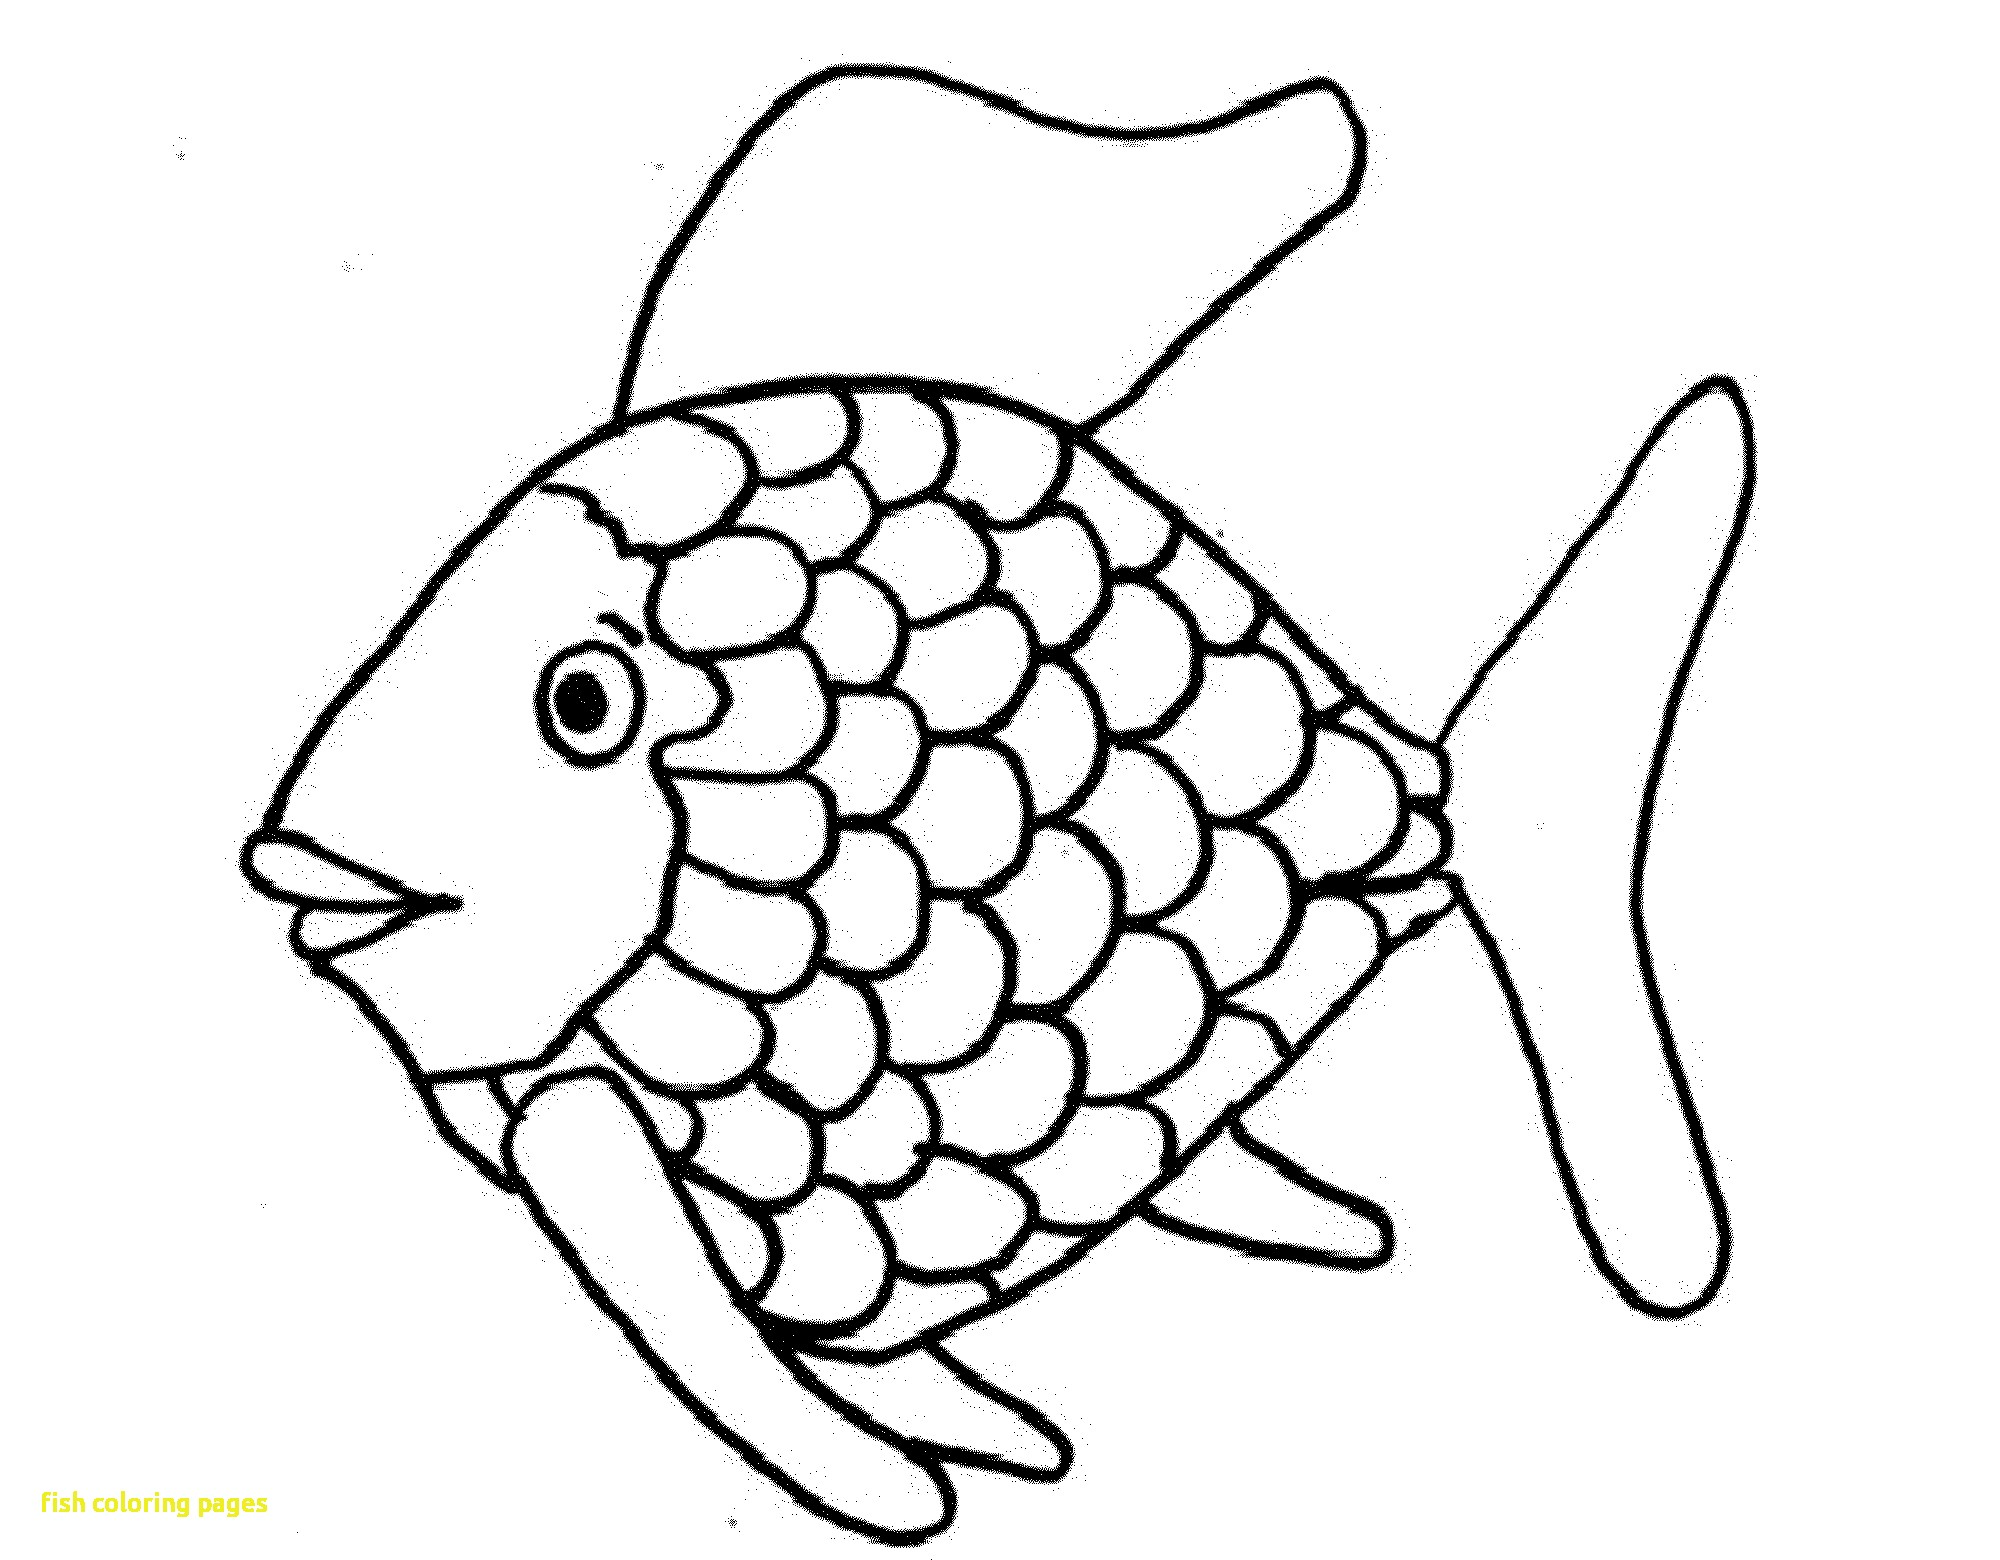 Cod Fish Coloring Pages At Getdrawings Com Free For Personal Use